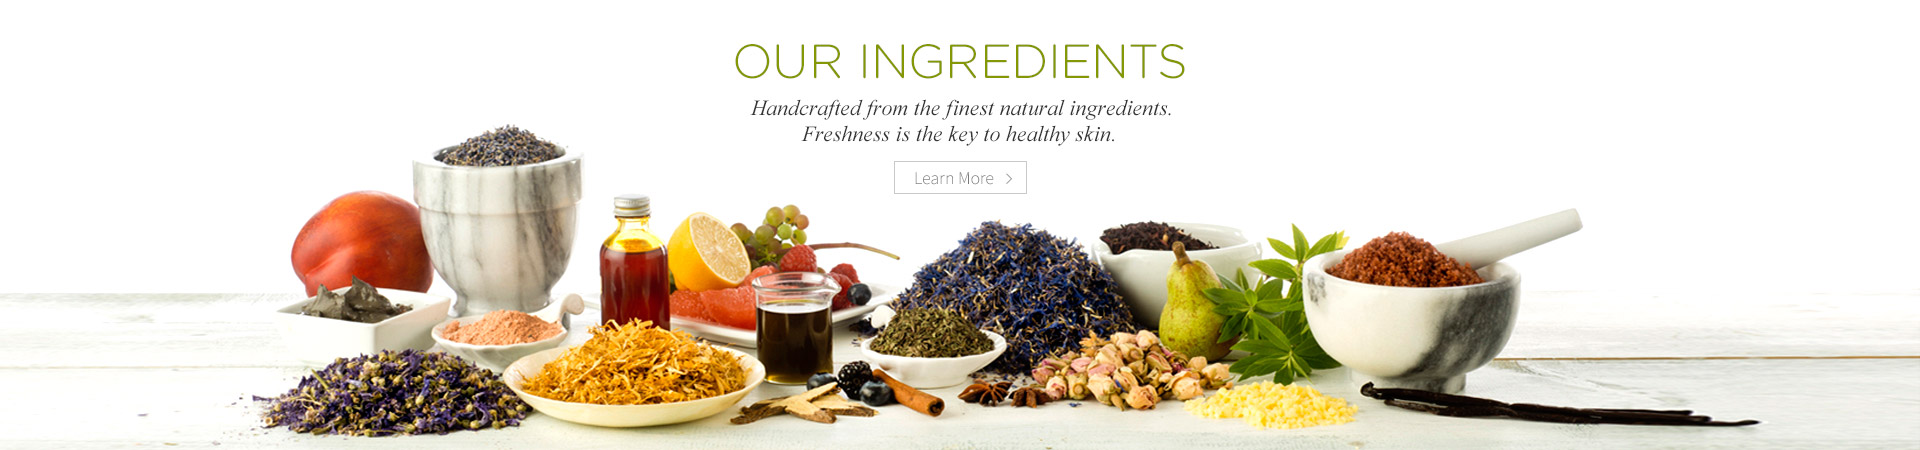 Top Organic & Natural Skin Care Products for your all skin care needs at Rosemira